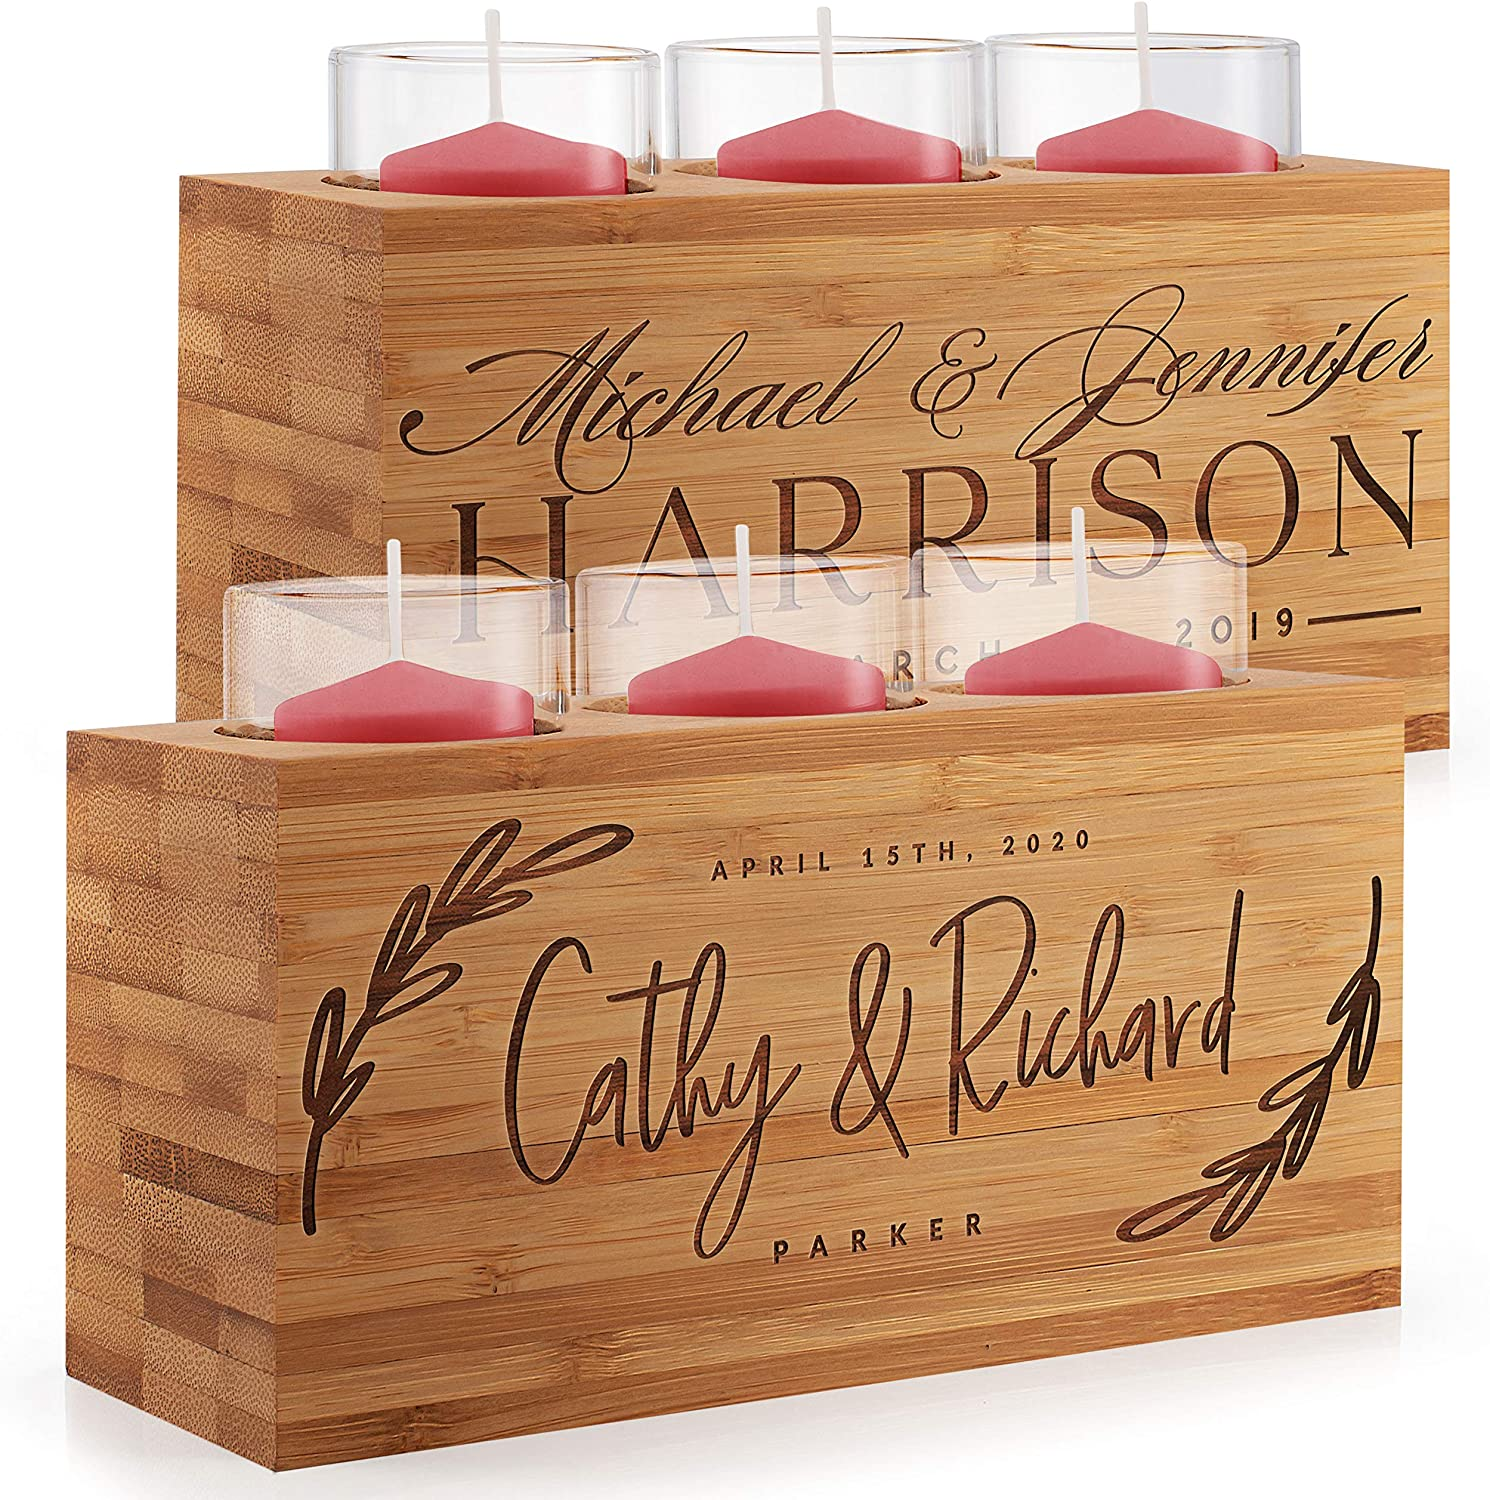 Personalized Wooden Candle Holder for Couples - 8 Design Option, Wedding Gifts - Custom Engraved Anniversary Candlestick Holders, Engagement, Valentines, Mr & Mrs Gifts, Romantic Home Decorations